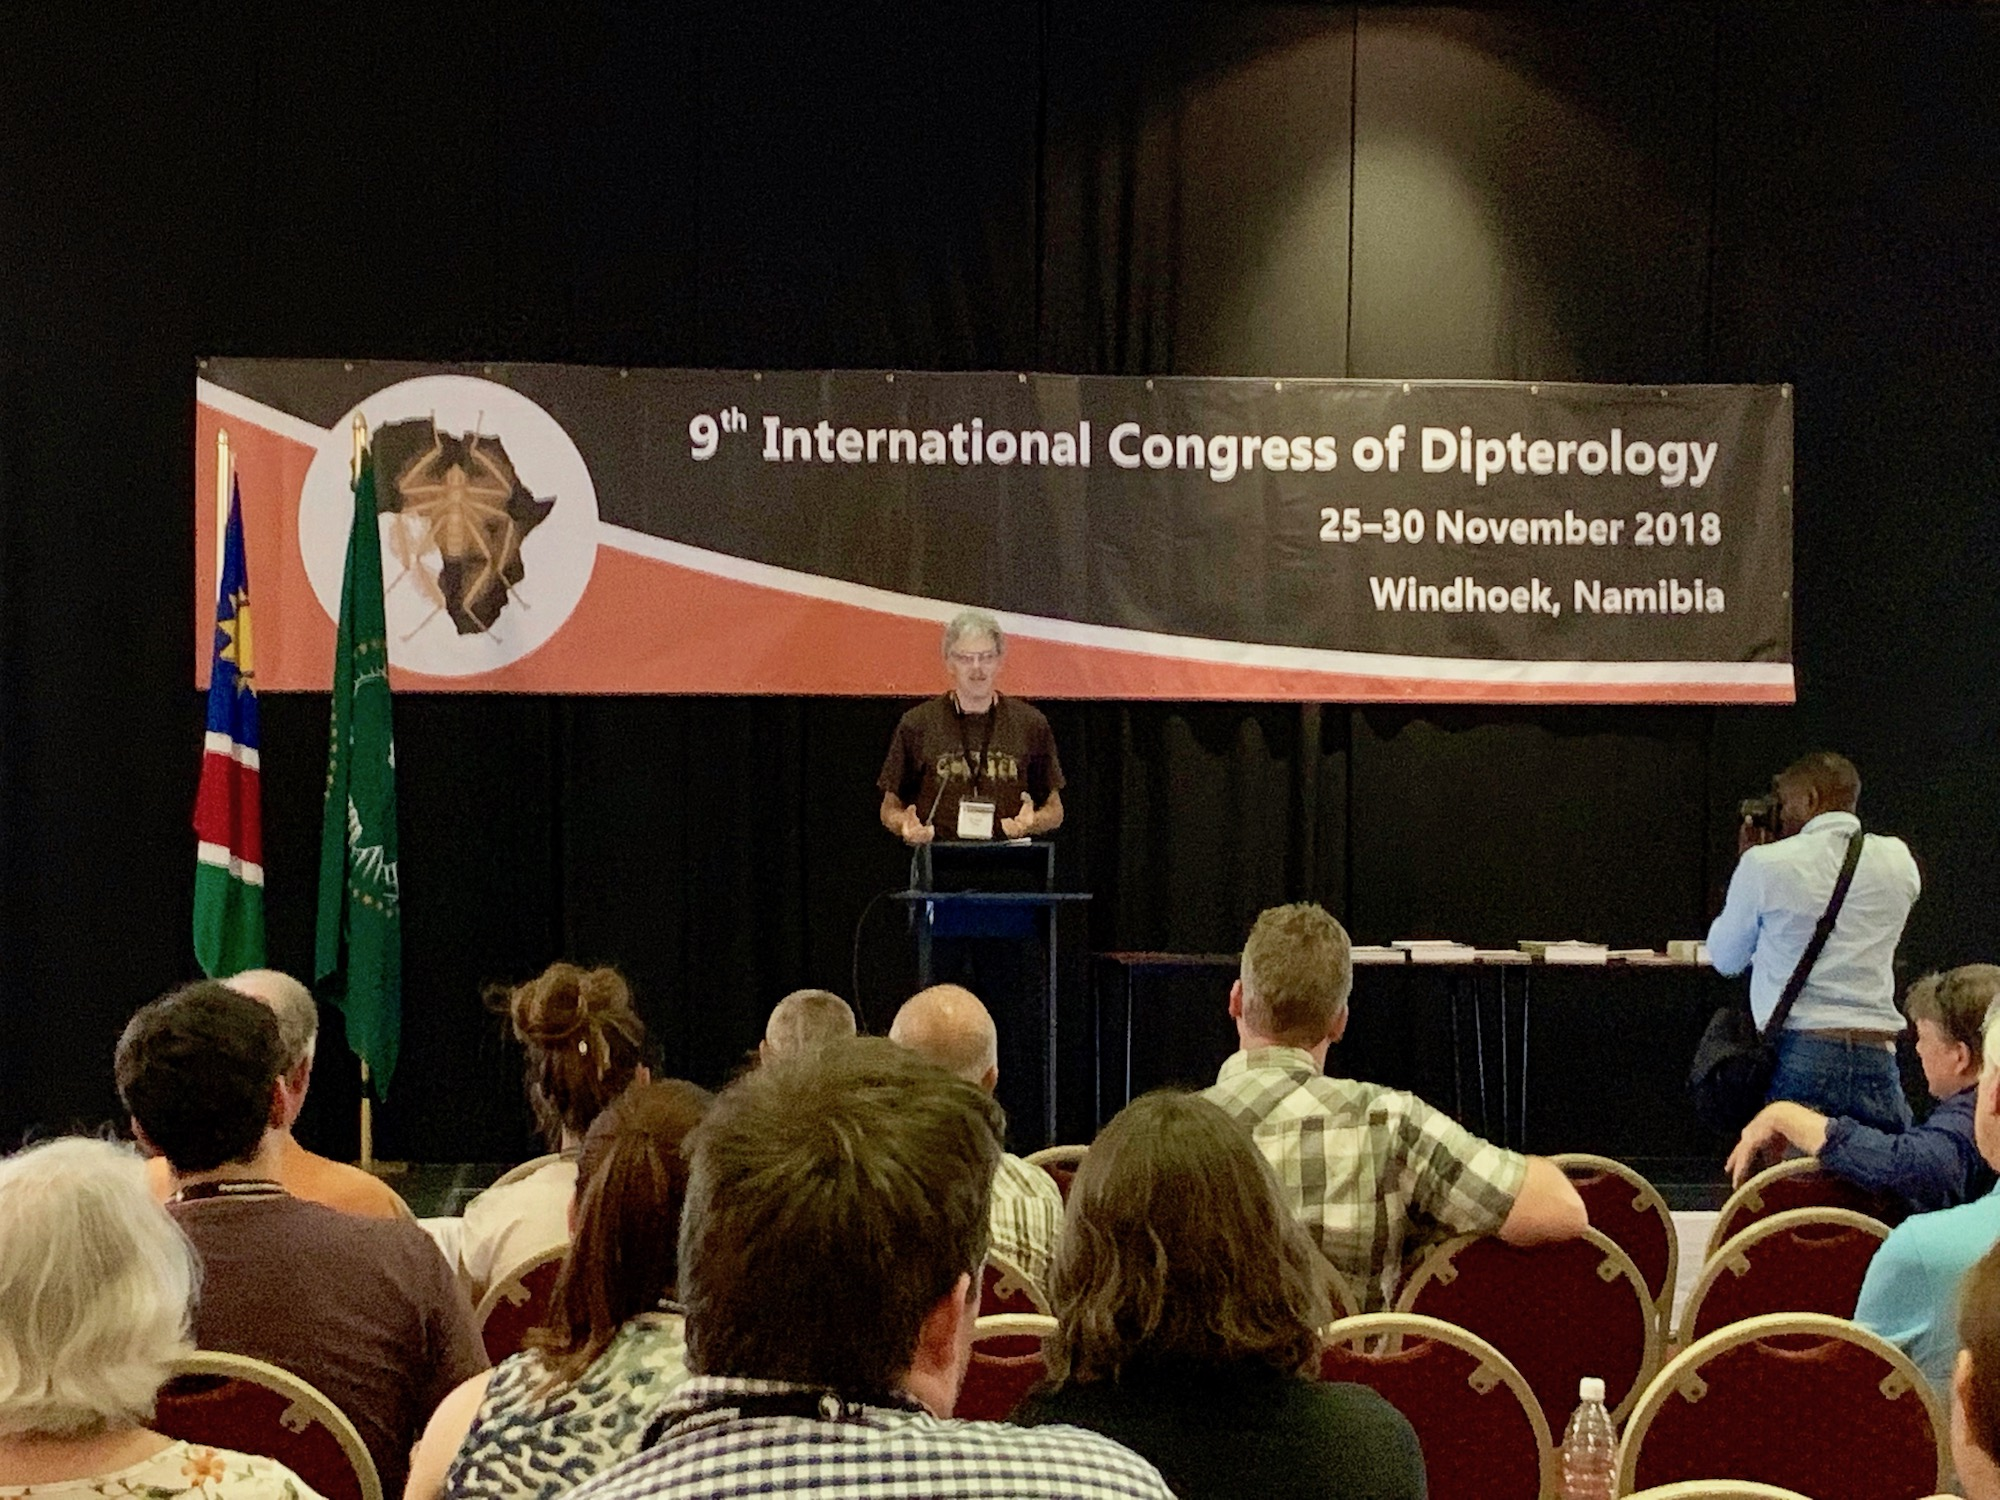 mark_benecke_ICD9_dipterology_world_congress_windhoeck_namibia - 290.jpg